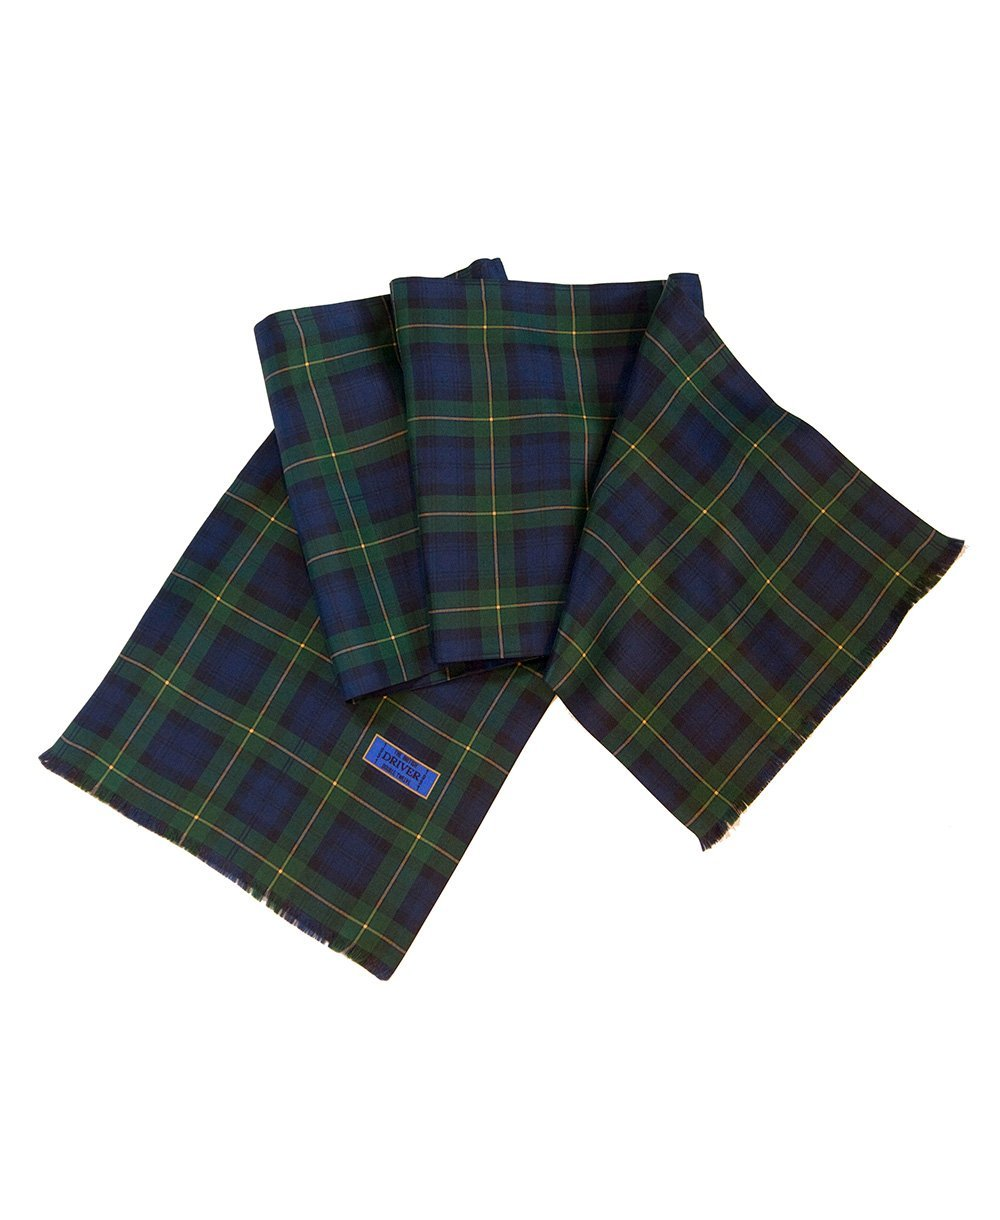 Goodwood Silk Freddie March Gordon Tartan Drivers Scarf